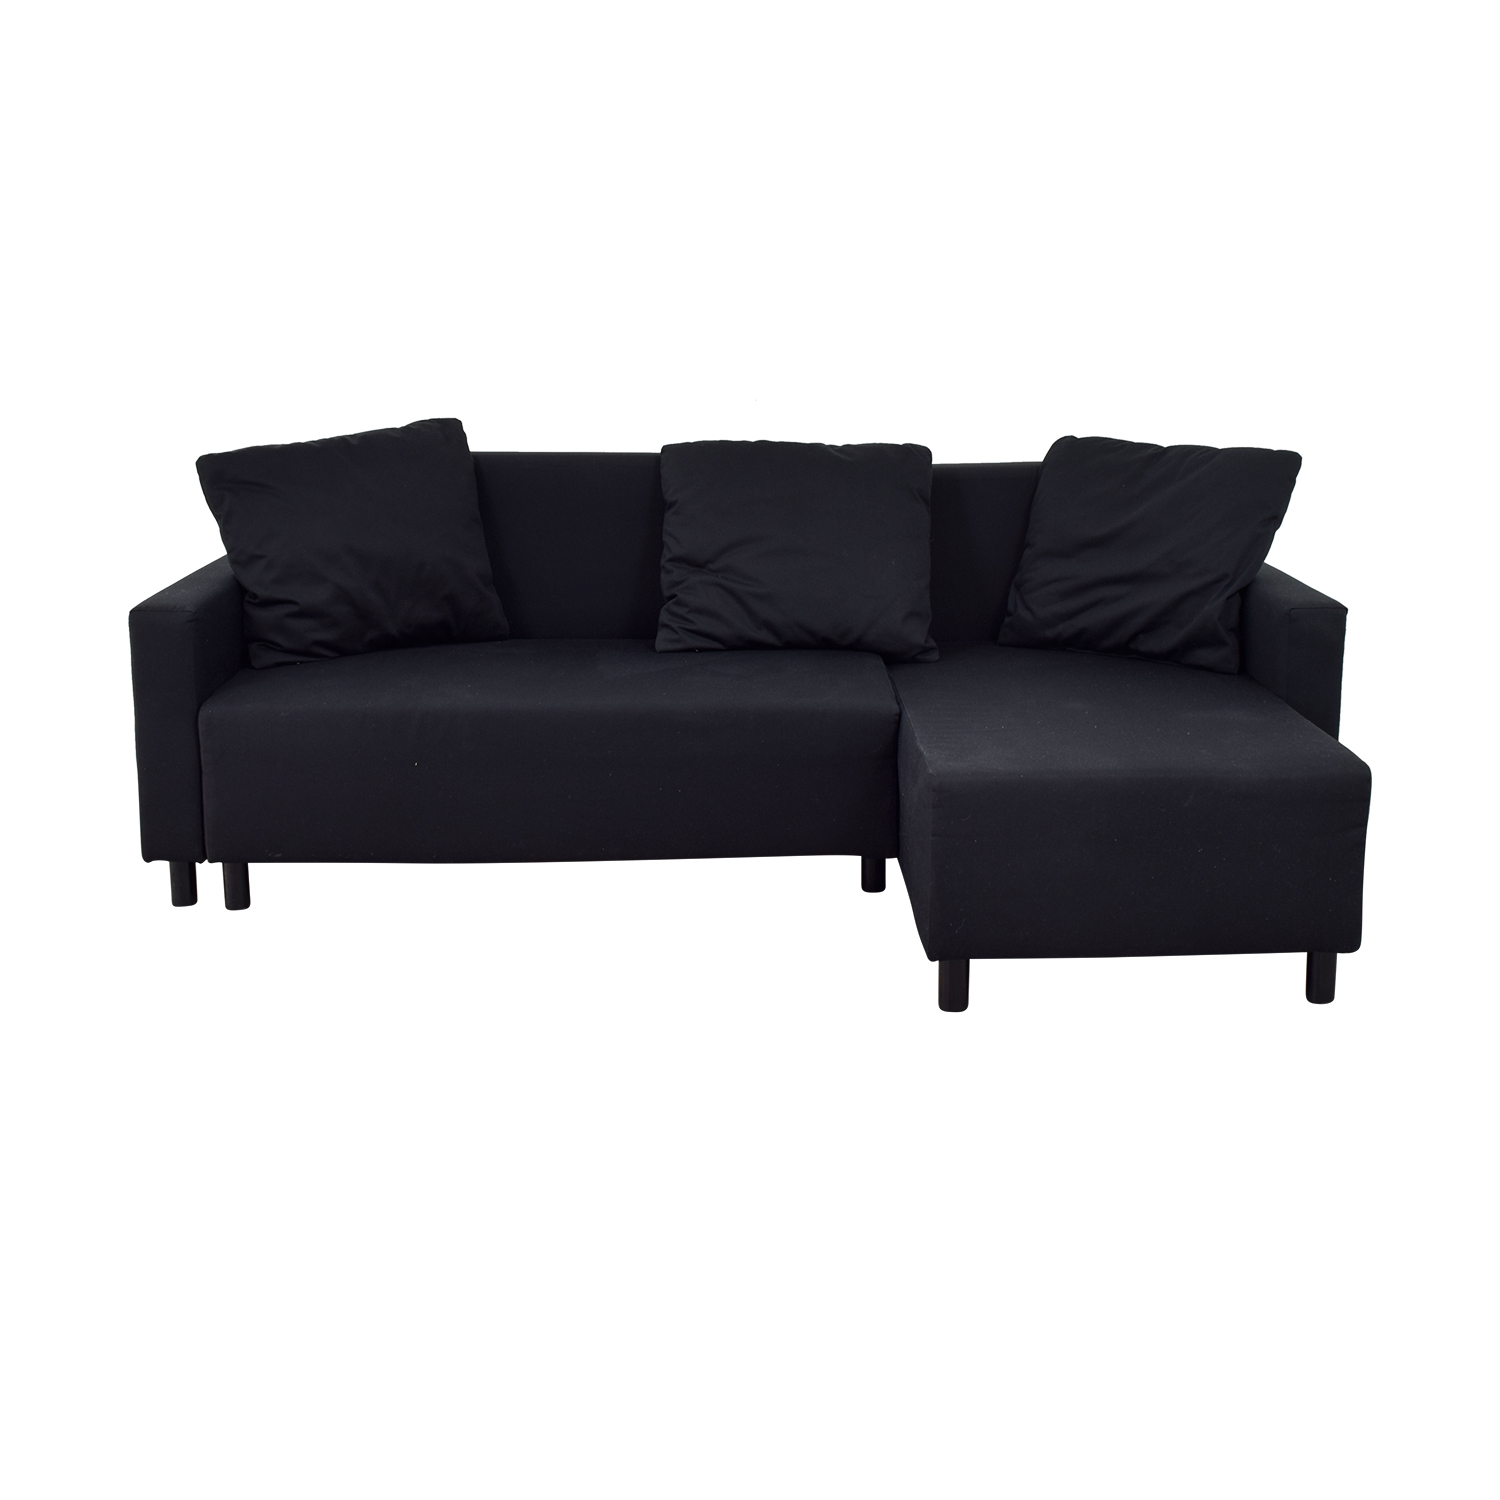 Couch Ikea 31 Off Ikea Ikea Black Sleeper Chaise Sectional With Storage